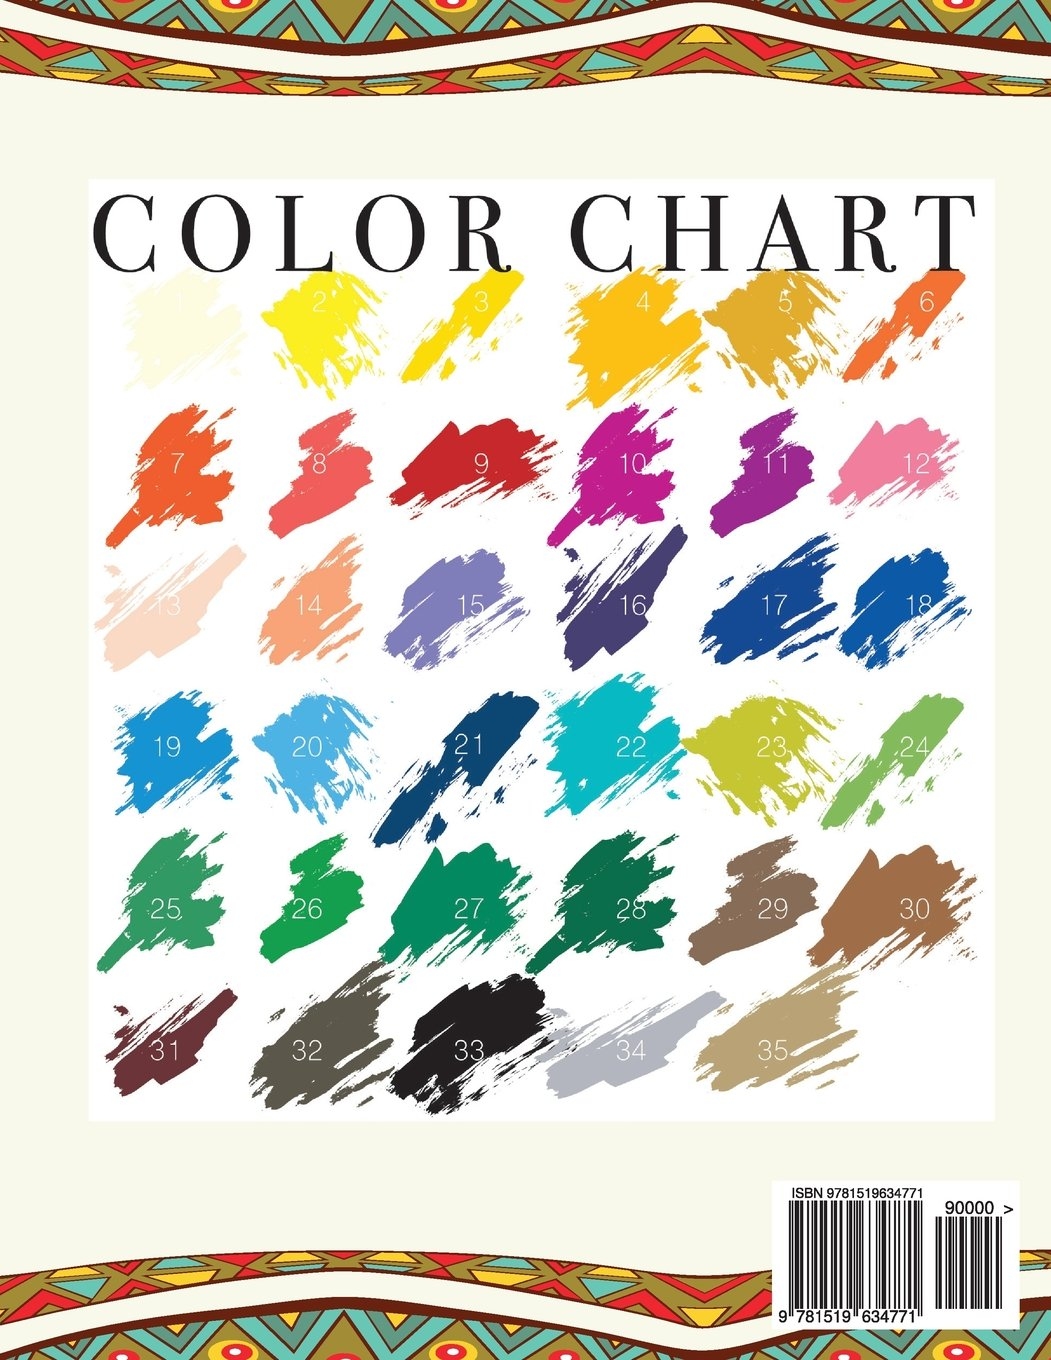 Color By Number For Adults: Under an African Sky